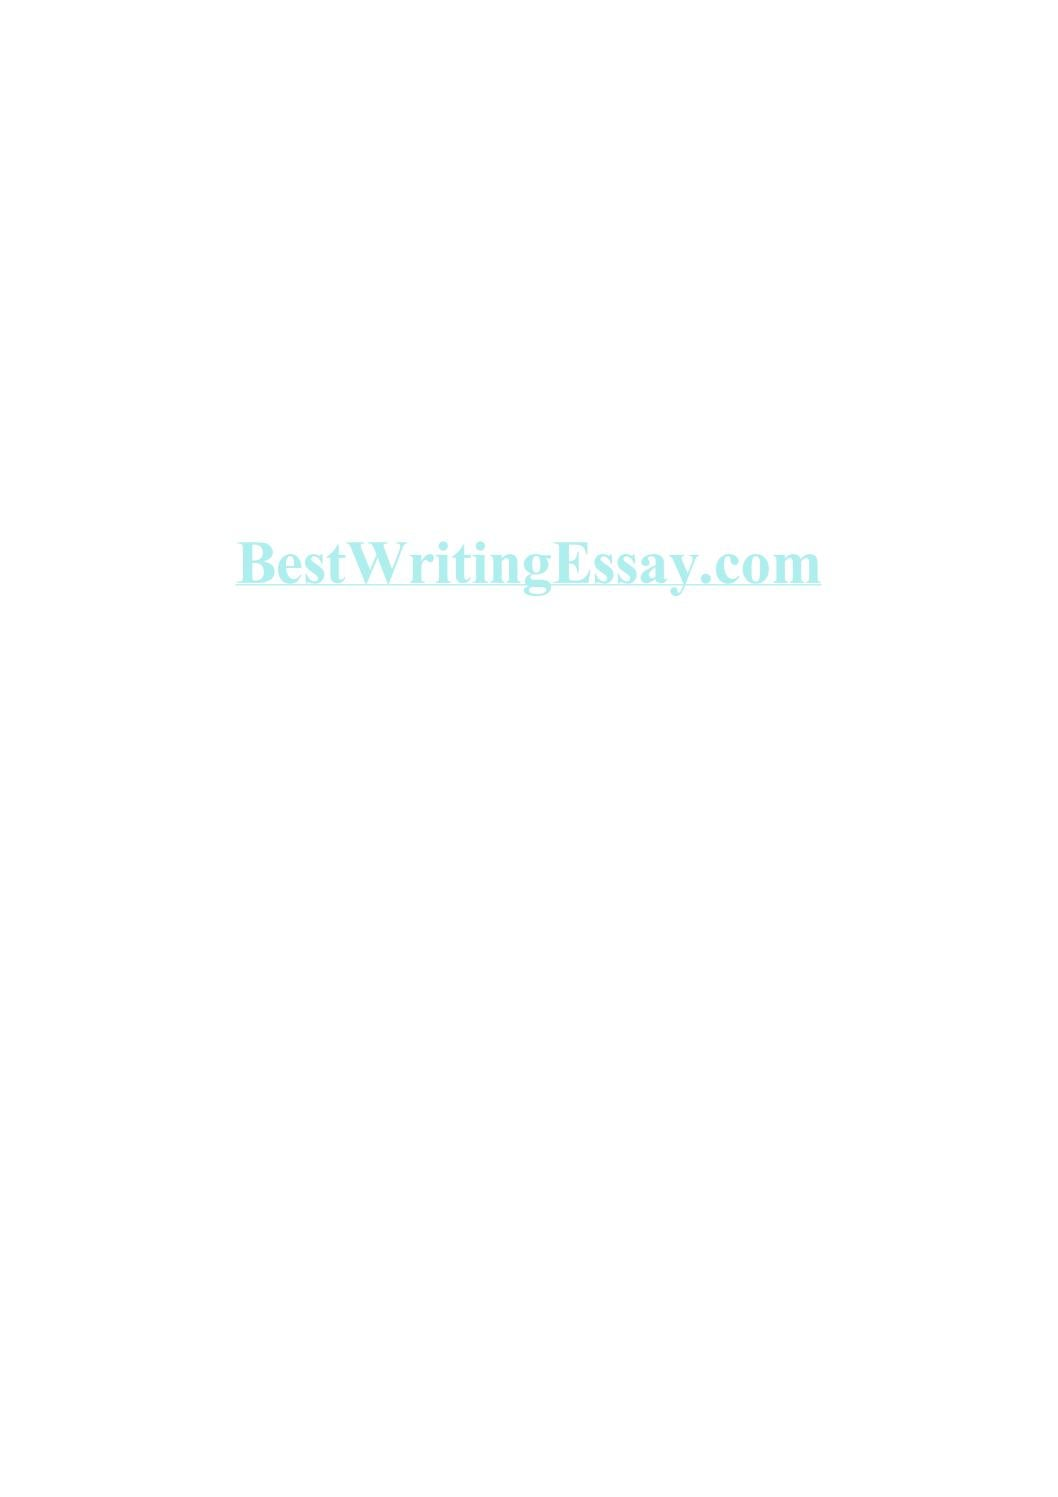 Business Essay Structure  Essays Term Papers also Thesis Statements For Persuasive Essays How To Write An Essay Proposal Example By Danacfuxm  Issuu Bullying Essay Thesis